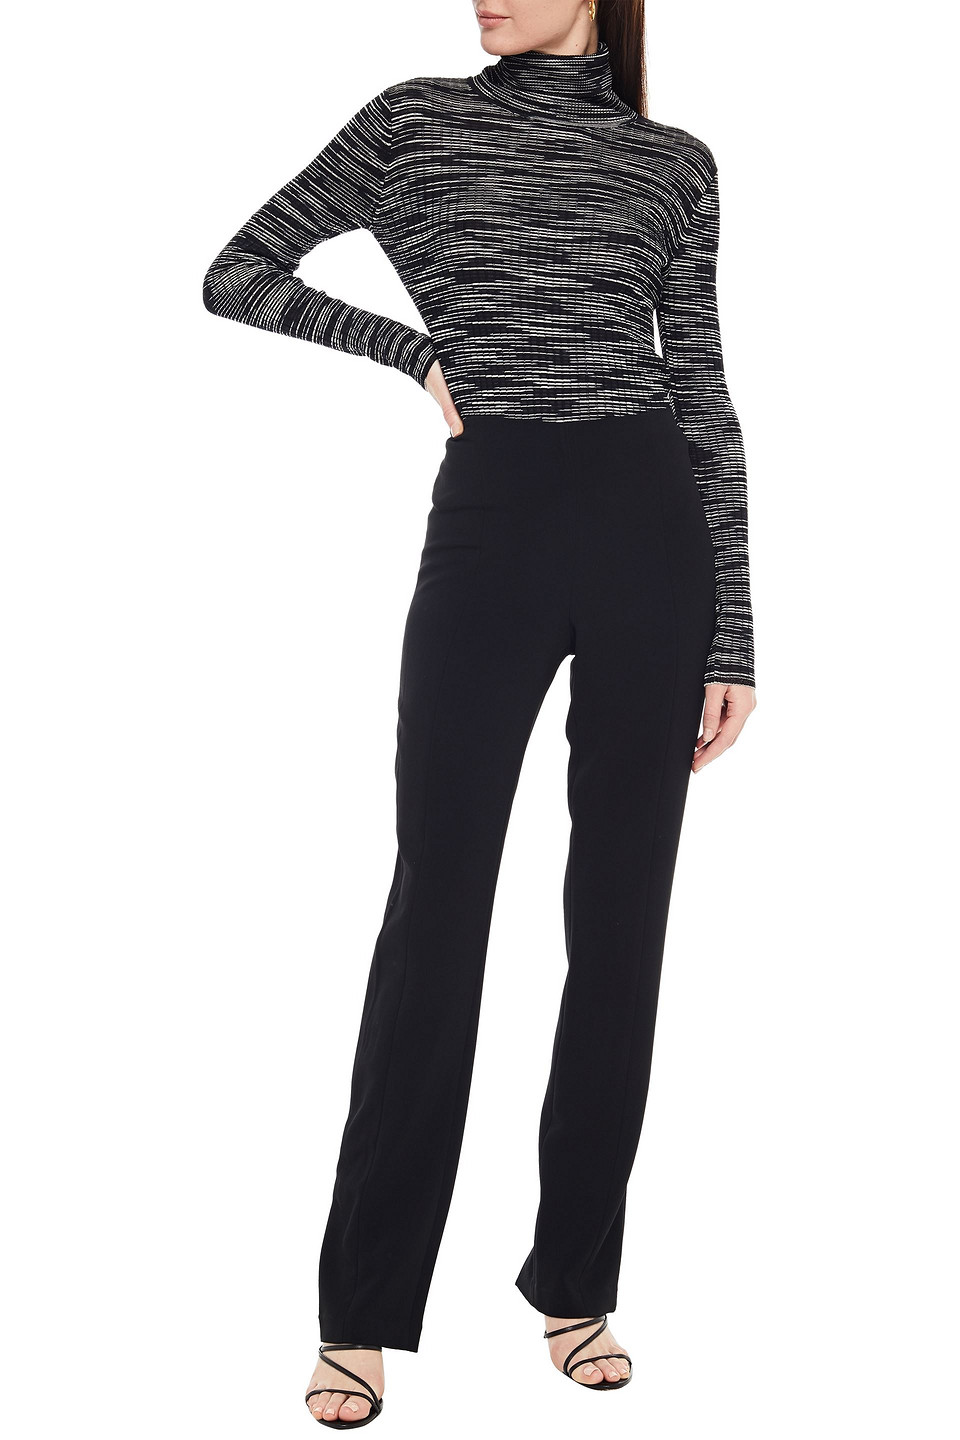 M Missoni | M Missoni Woman Metallic-trimmed Ribbed-knit Turtleneck Sweater Black | Clouty